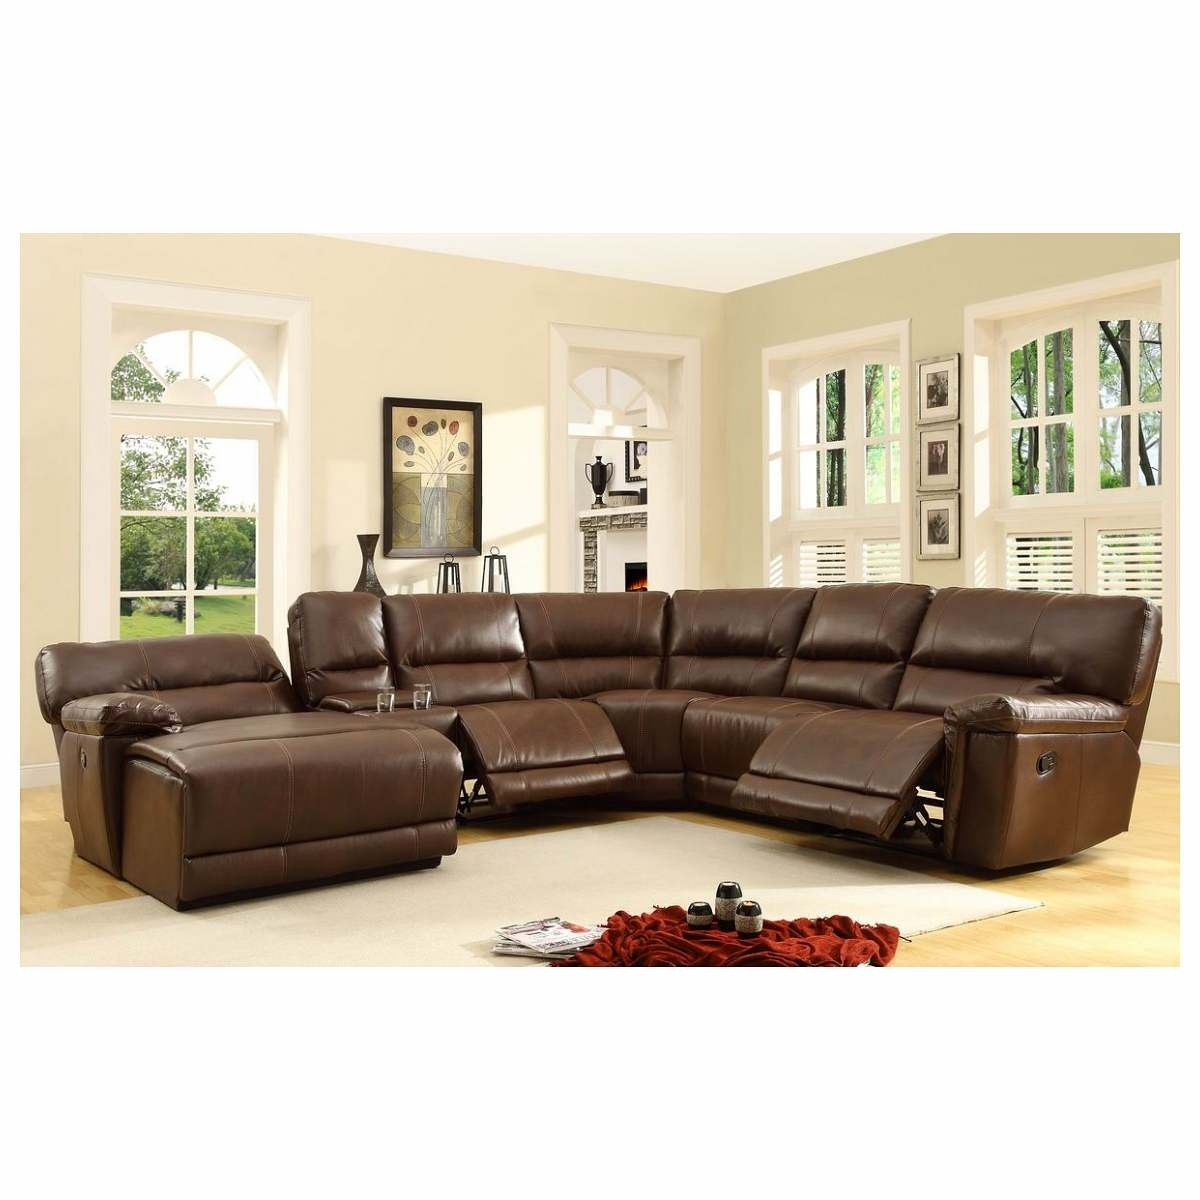 6 Pc Blythe Collection Brown Bonded Leather Match Upholstered For Well Known Sectional Sofas At Bad Boy (Gallery 15 of 15)